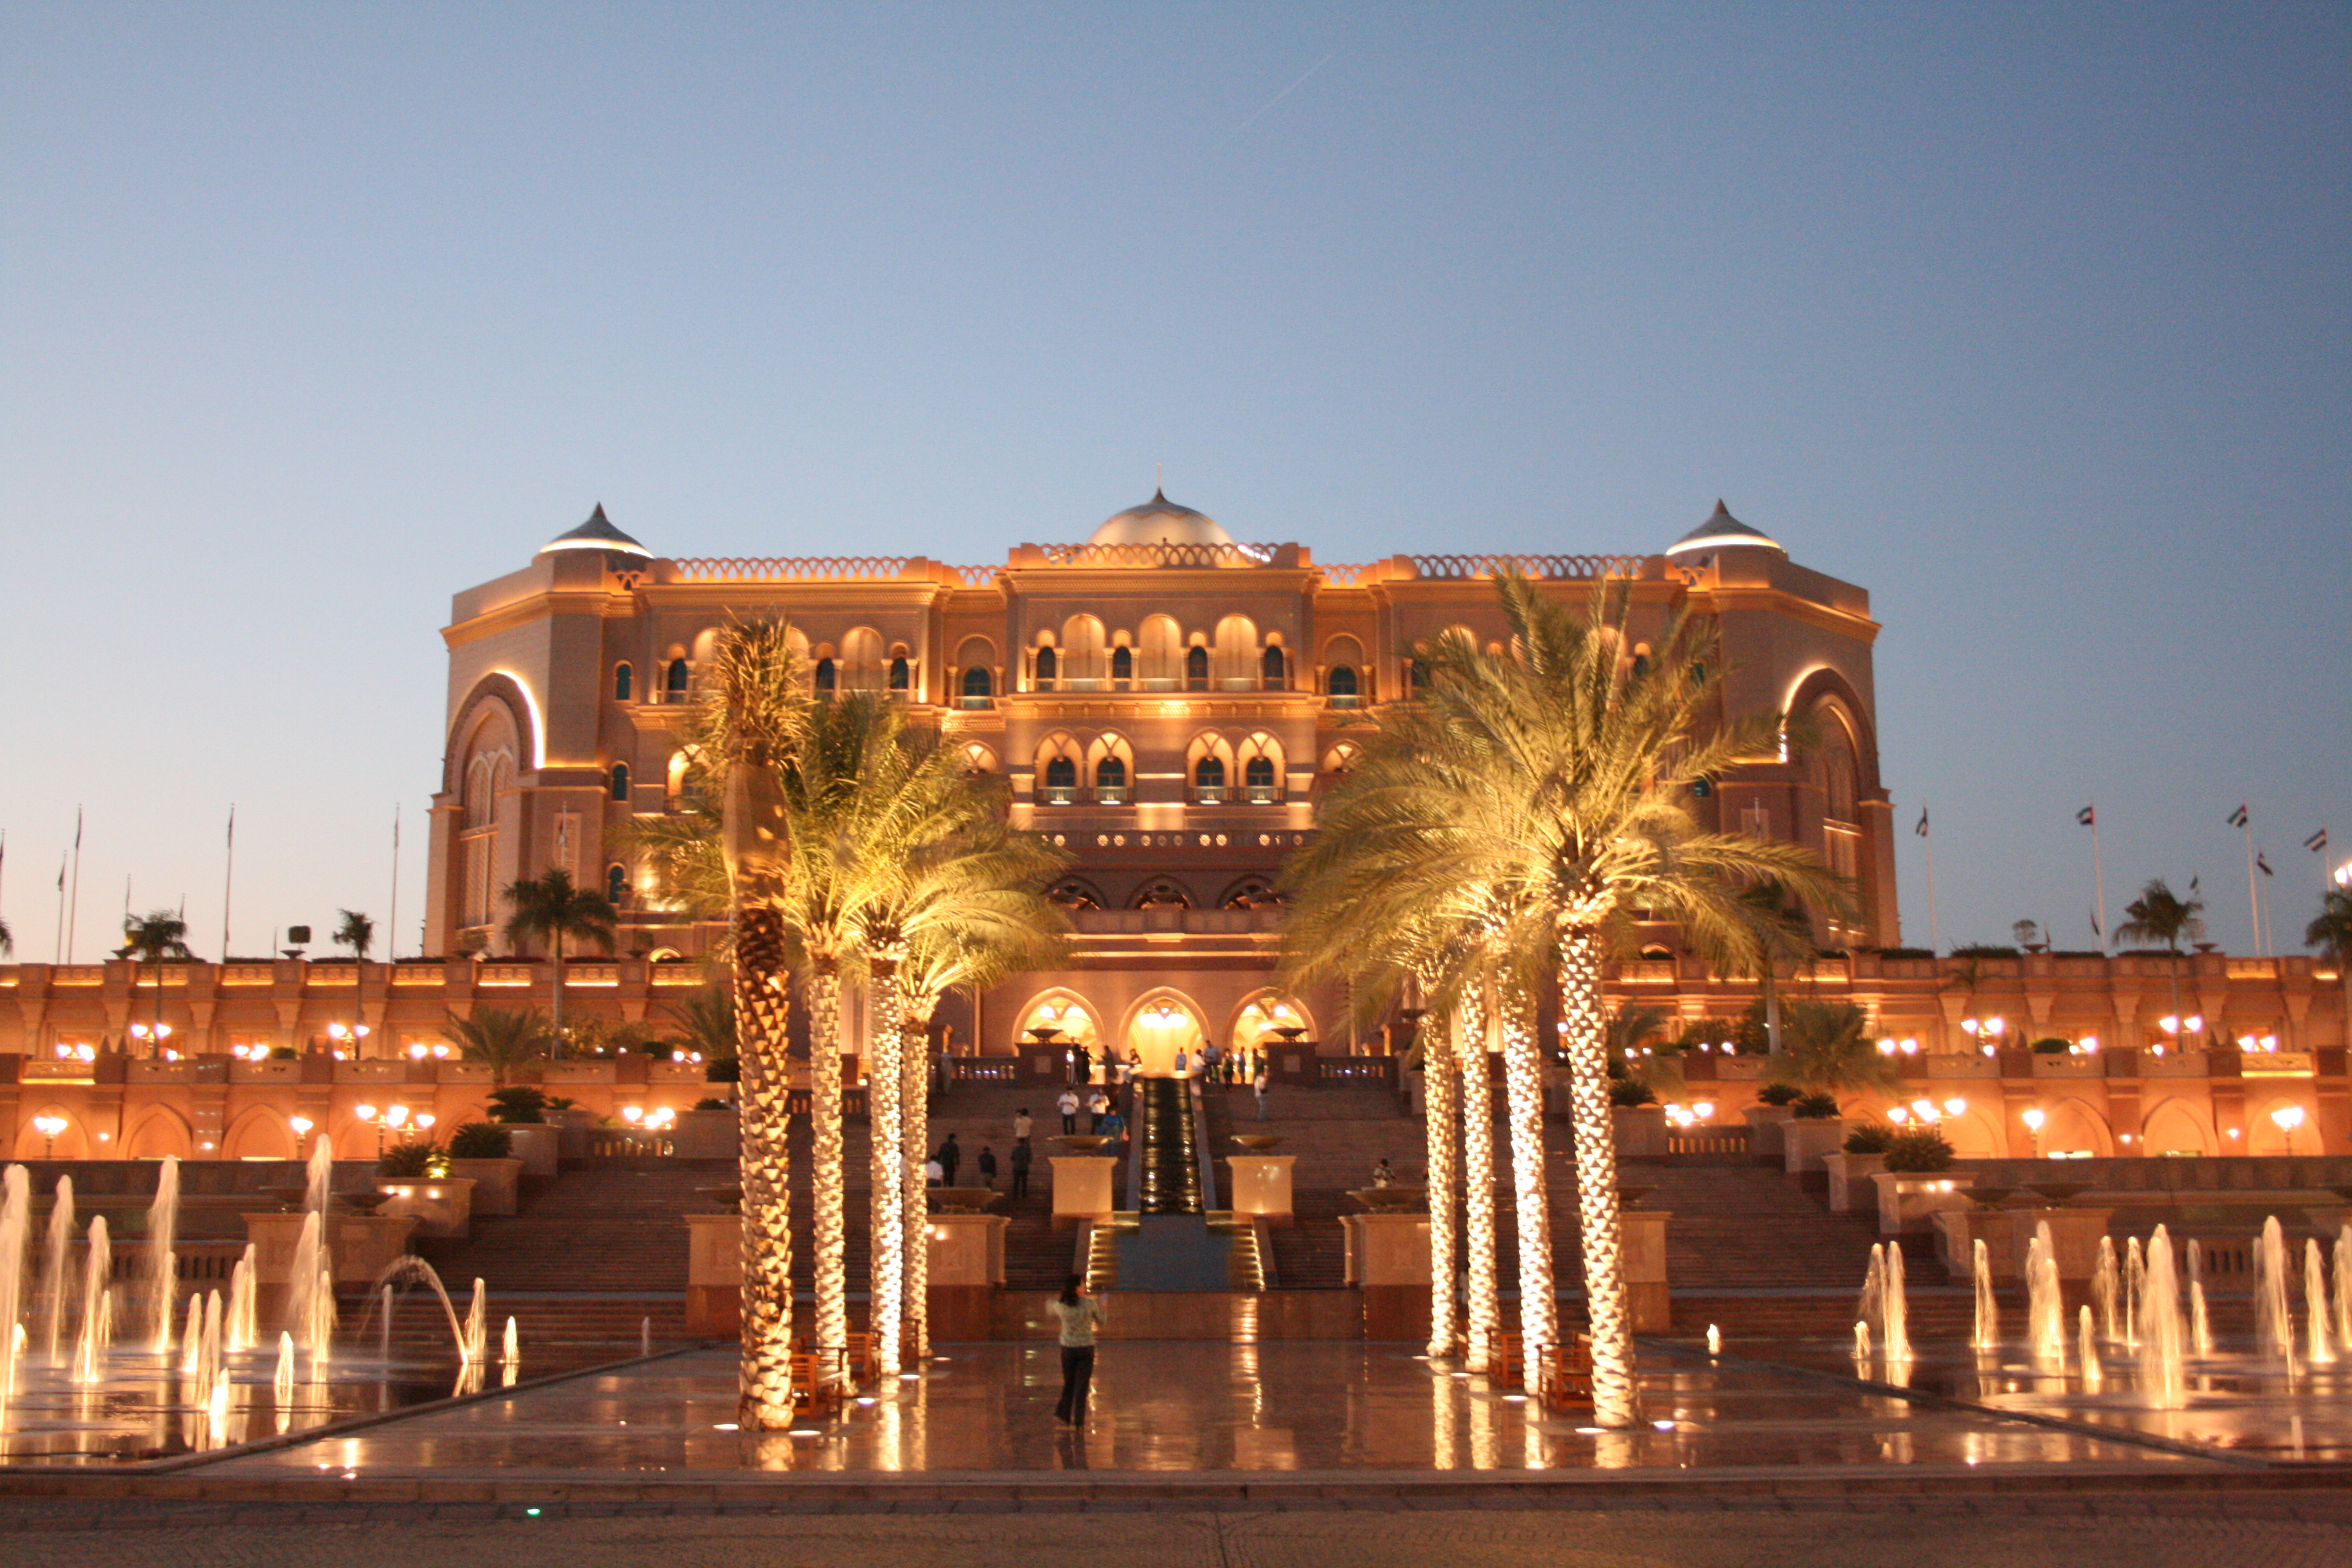 Emirates palace travelling moods for Hotels in uae